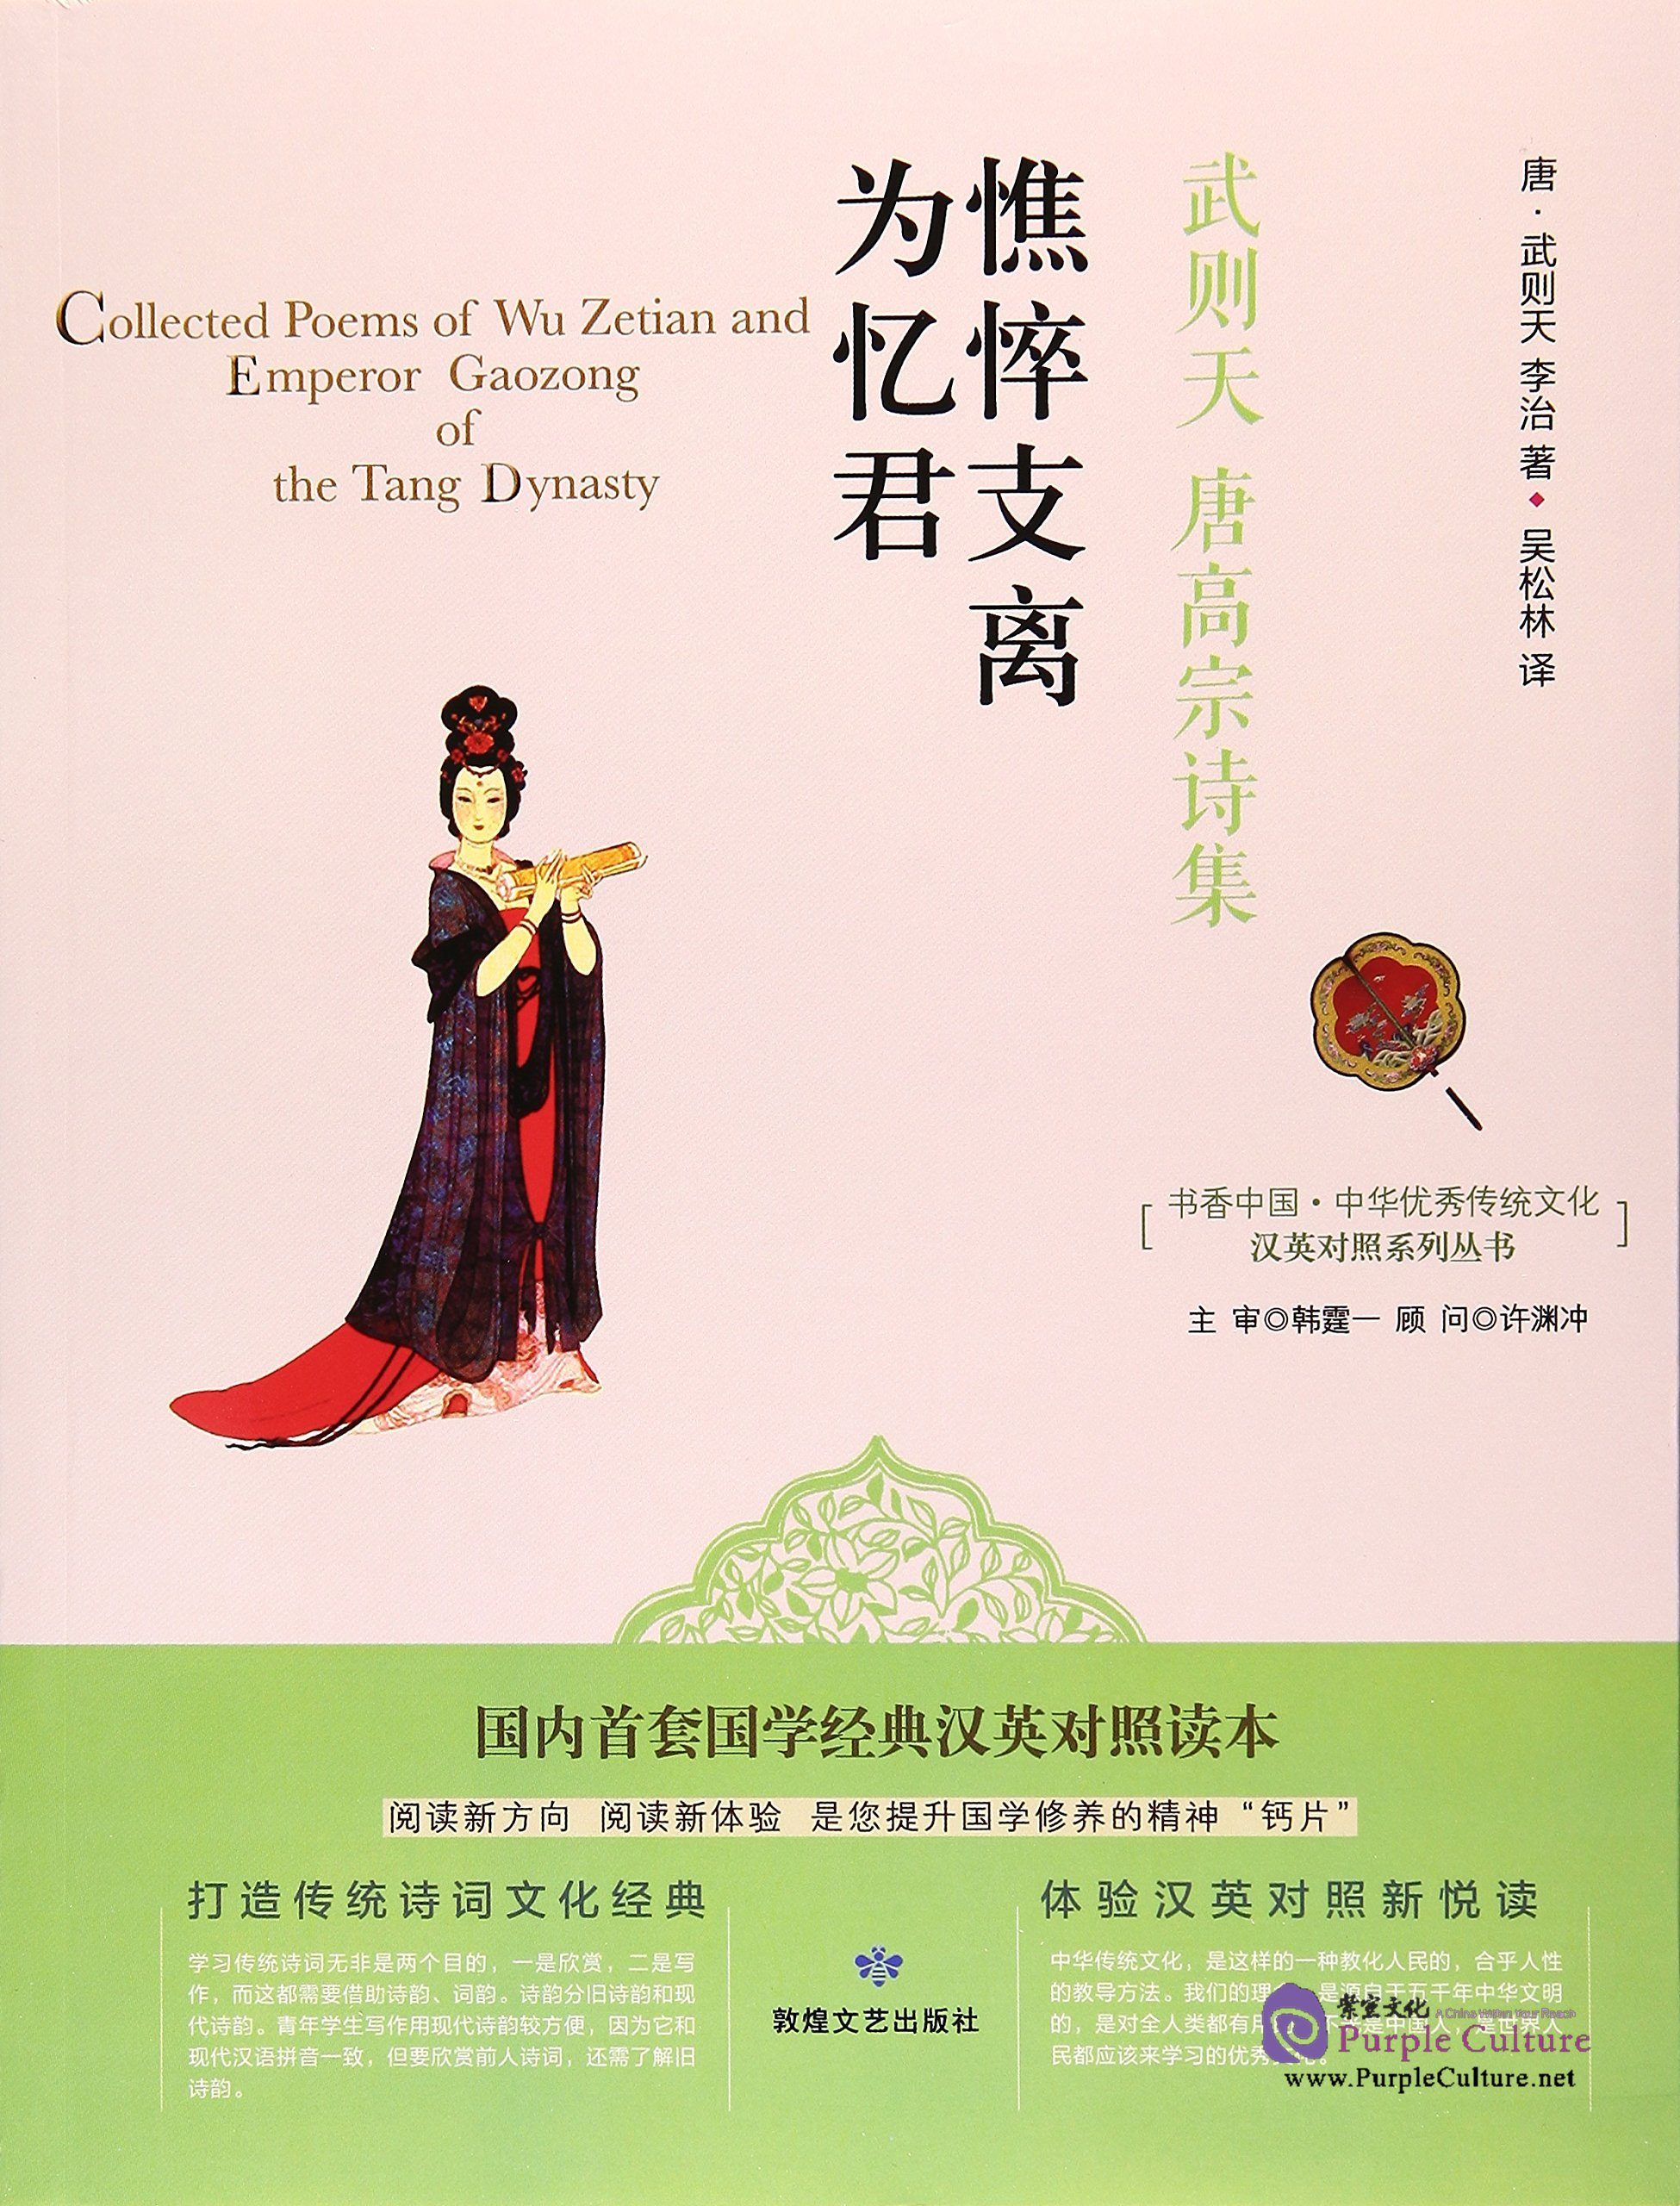 Collected Poems Of Wu Zetian And Emperor Gaozong Of The